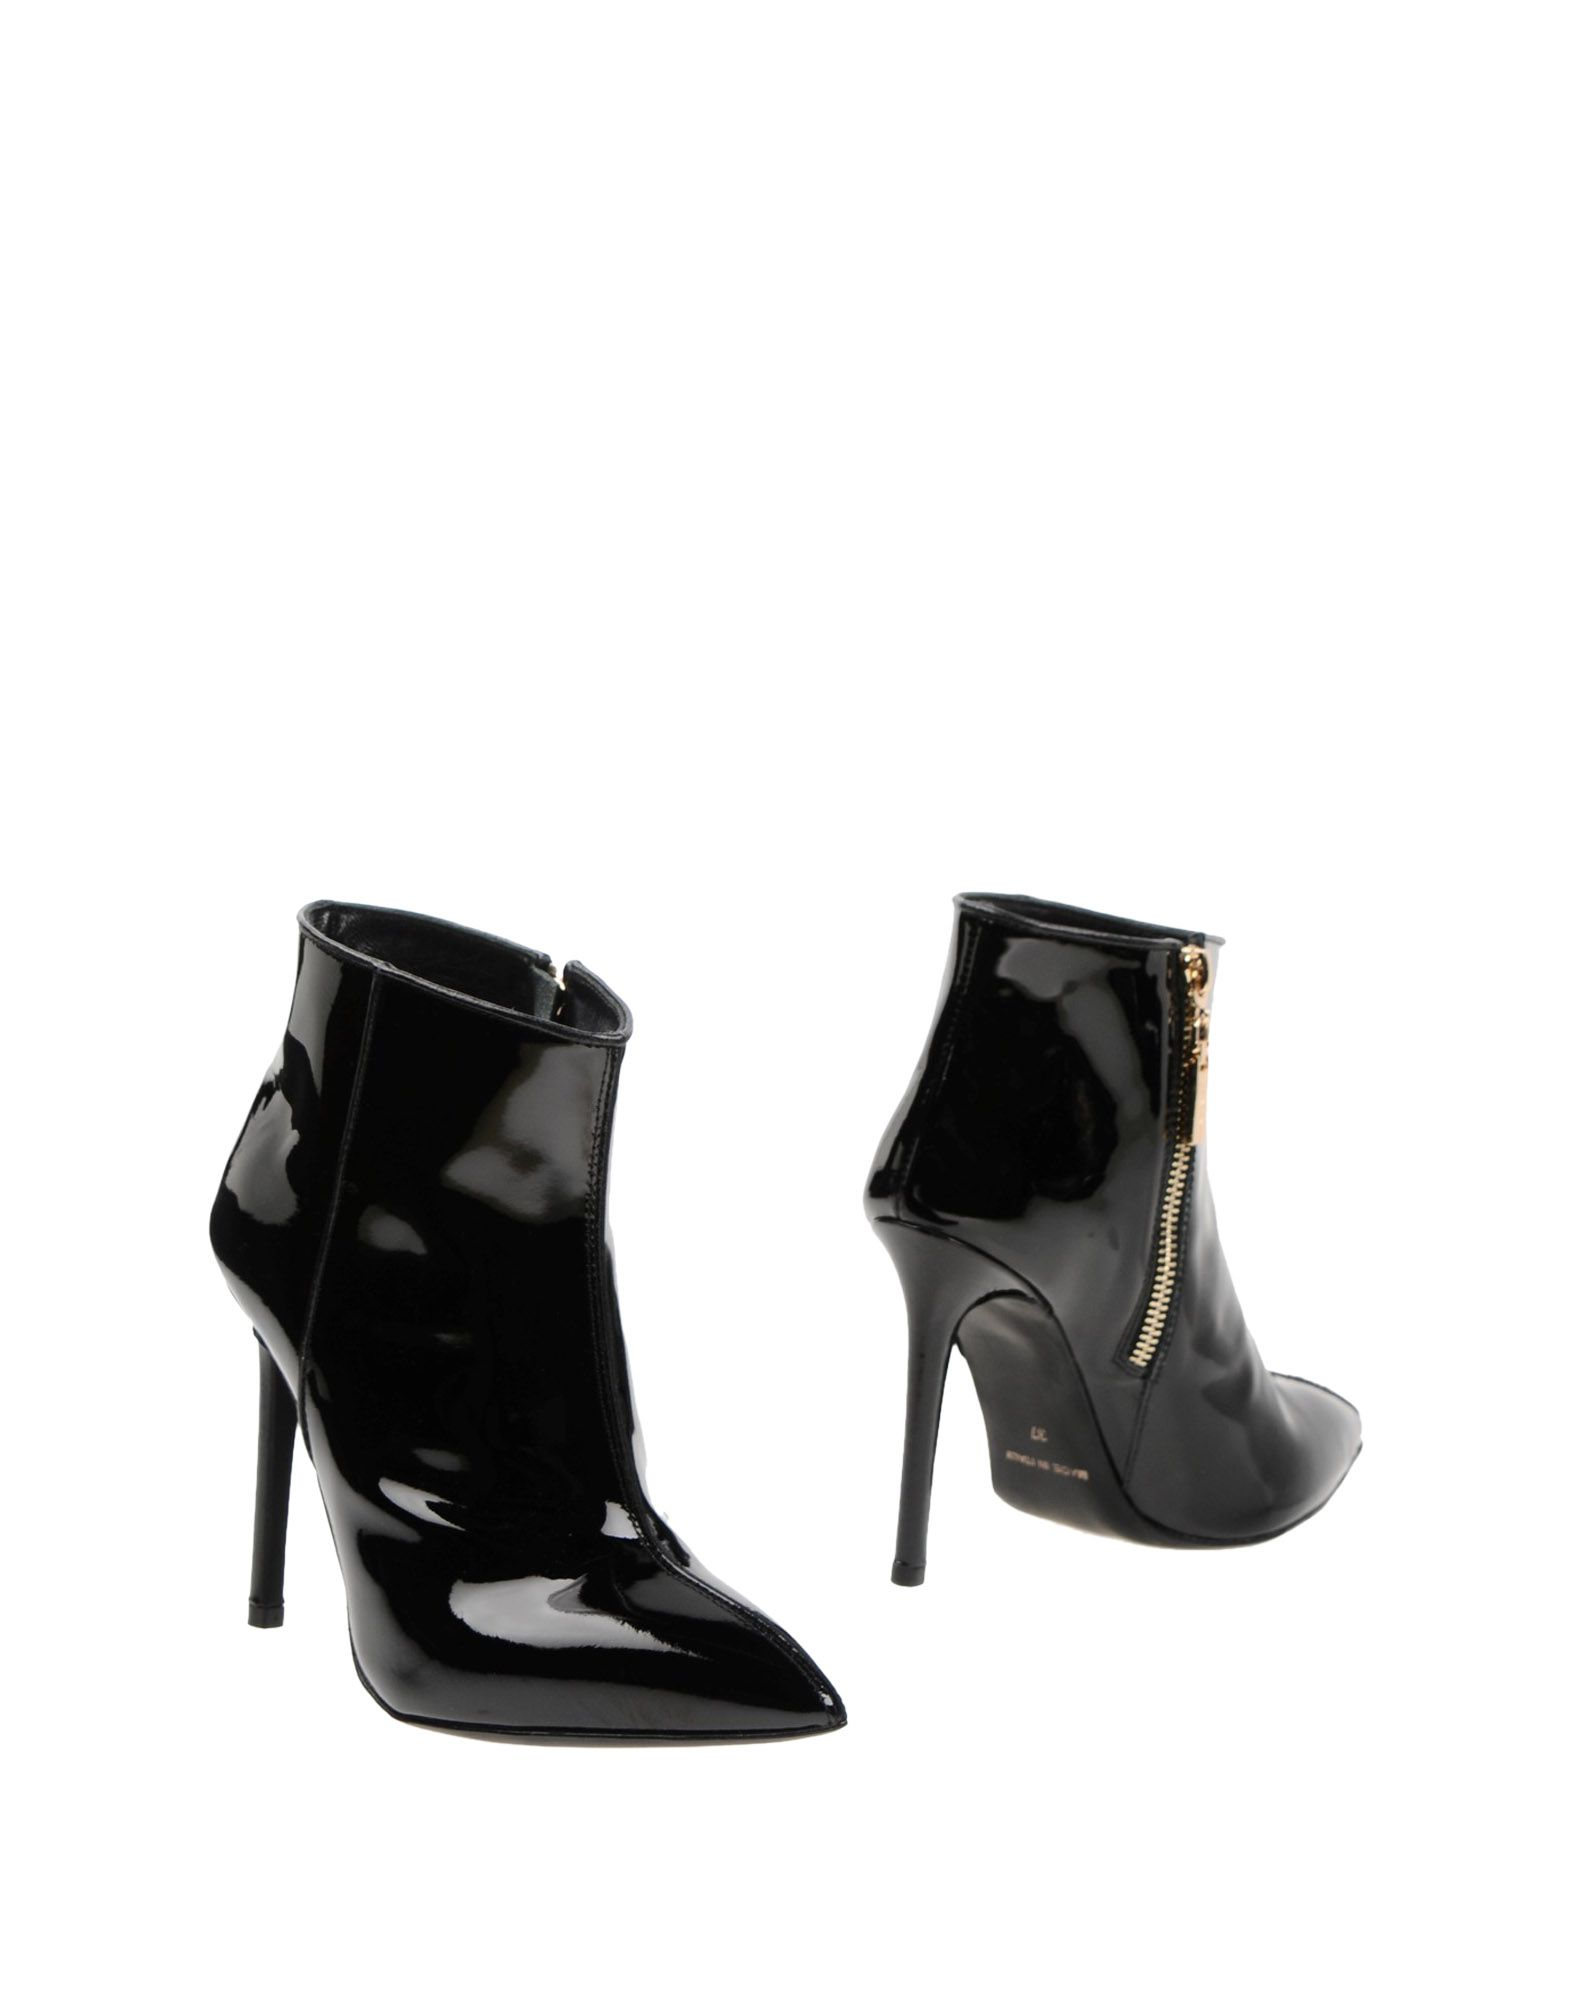 Mangano Ankle boot